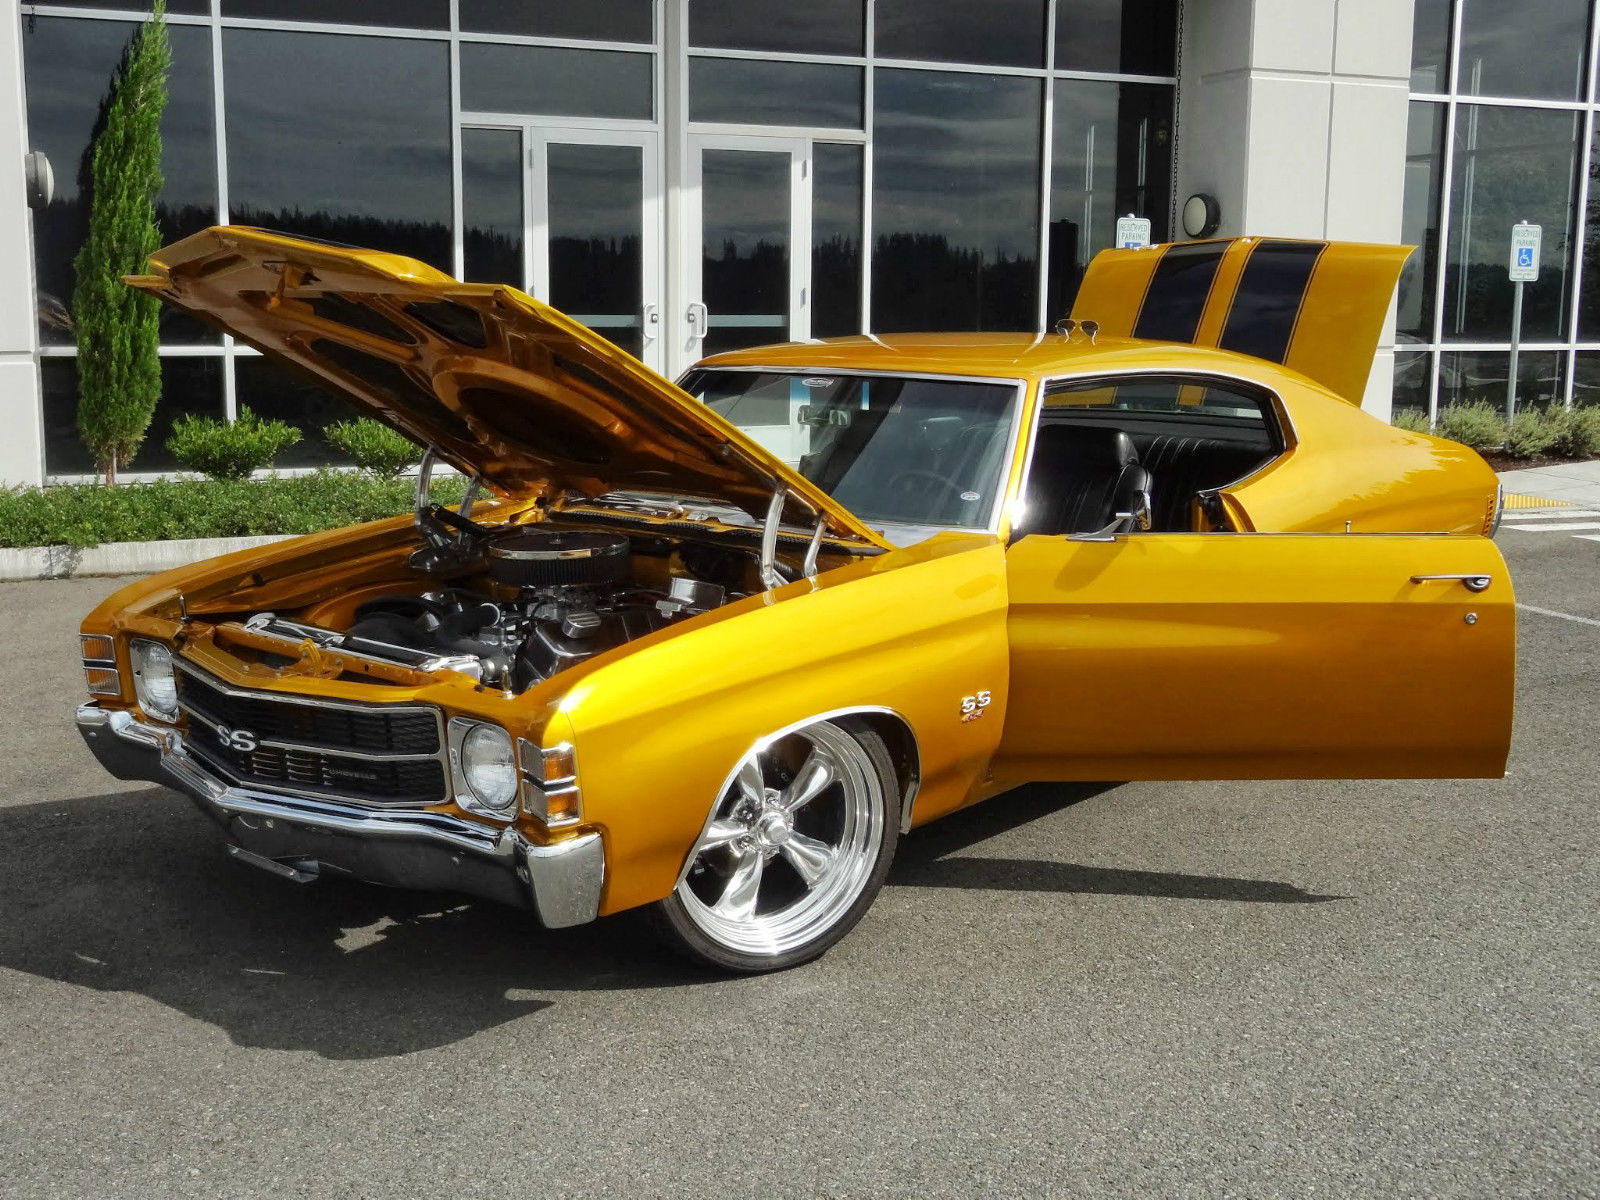 1971 Chevelle SS | For Sale Friday - Rides Magazine